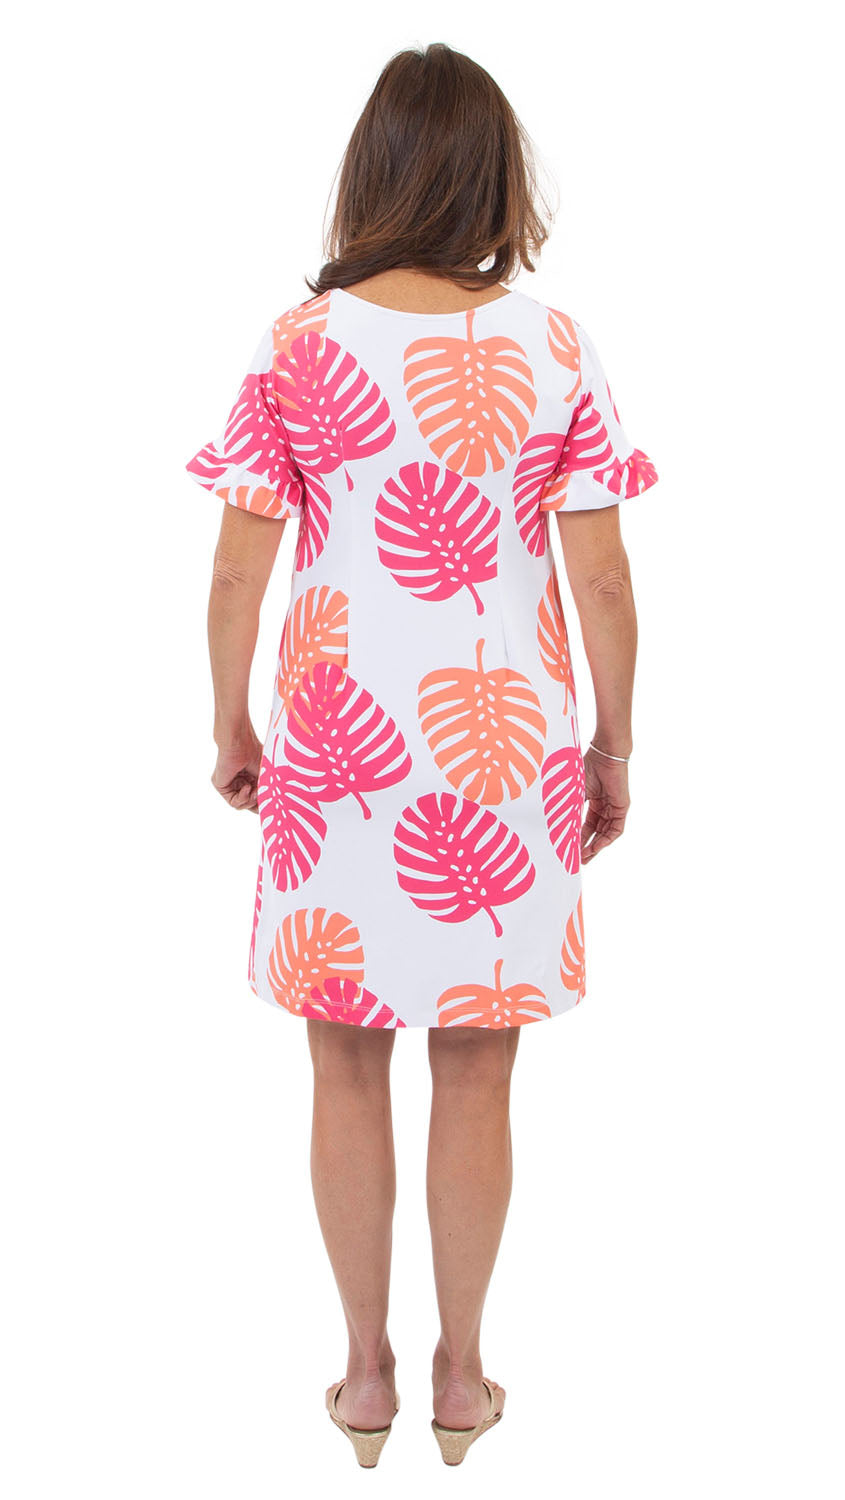 Coco Dress - Hot Pink/Salmon Dancing Palms